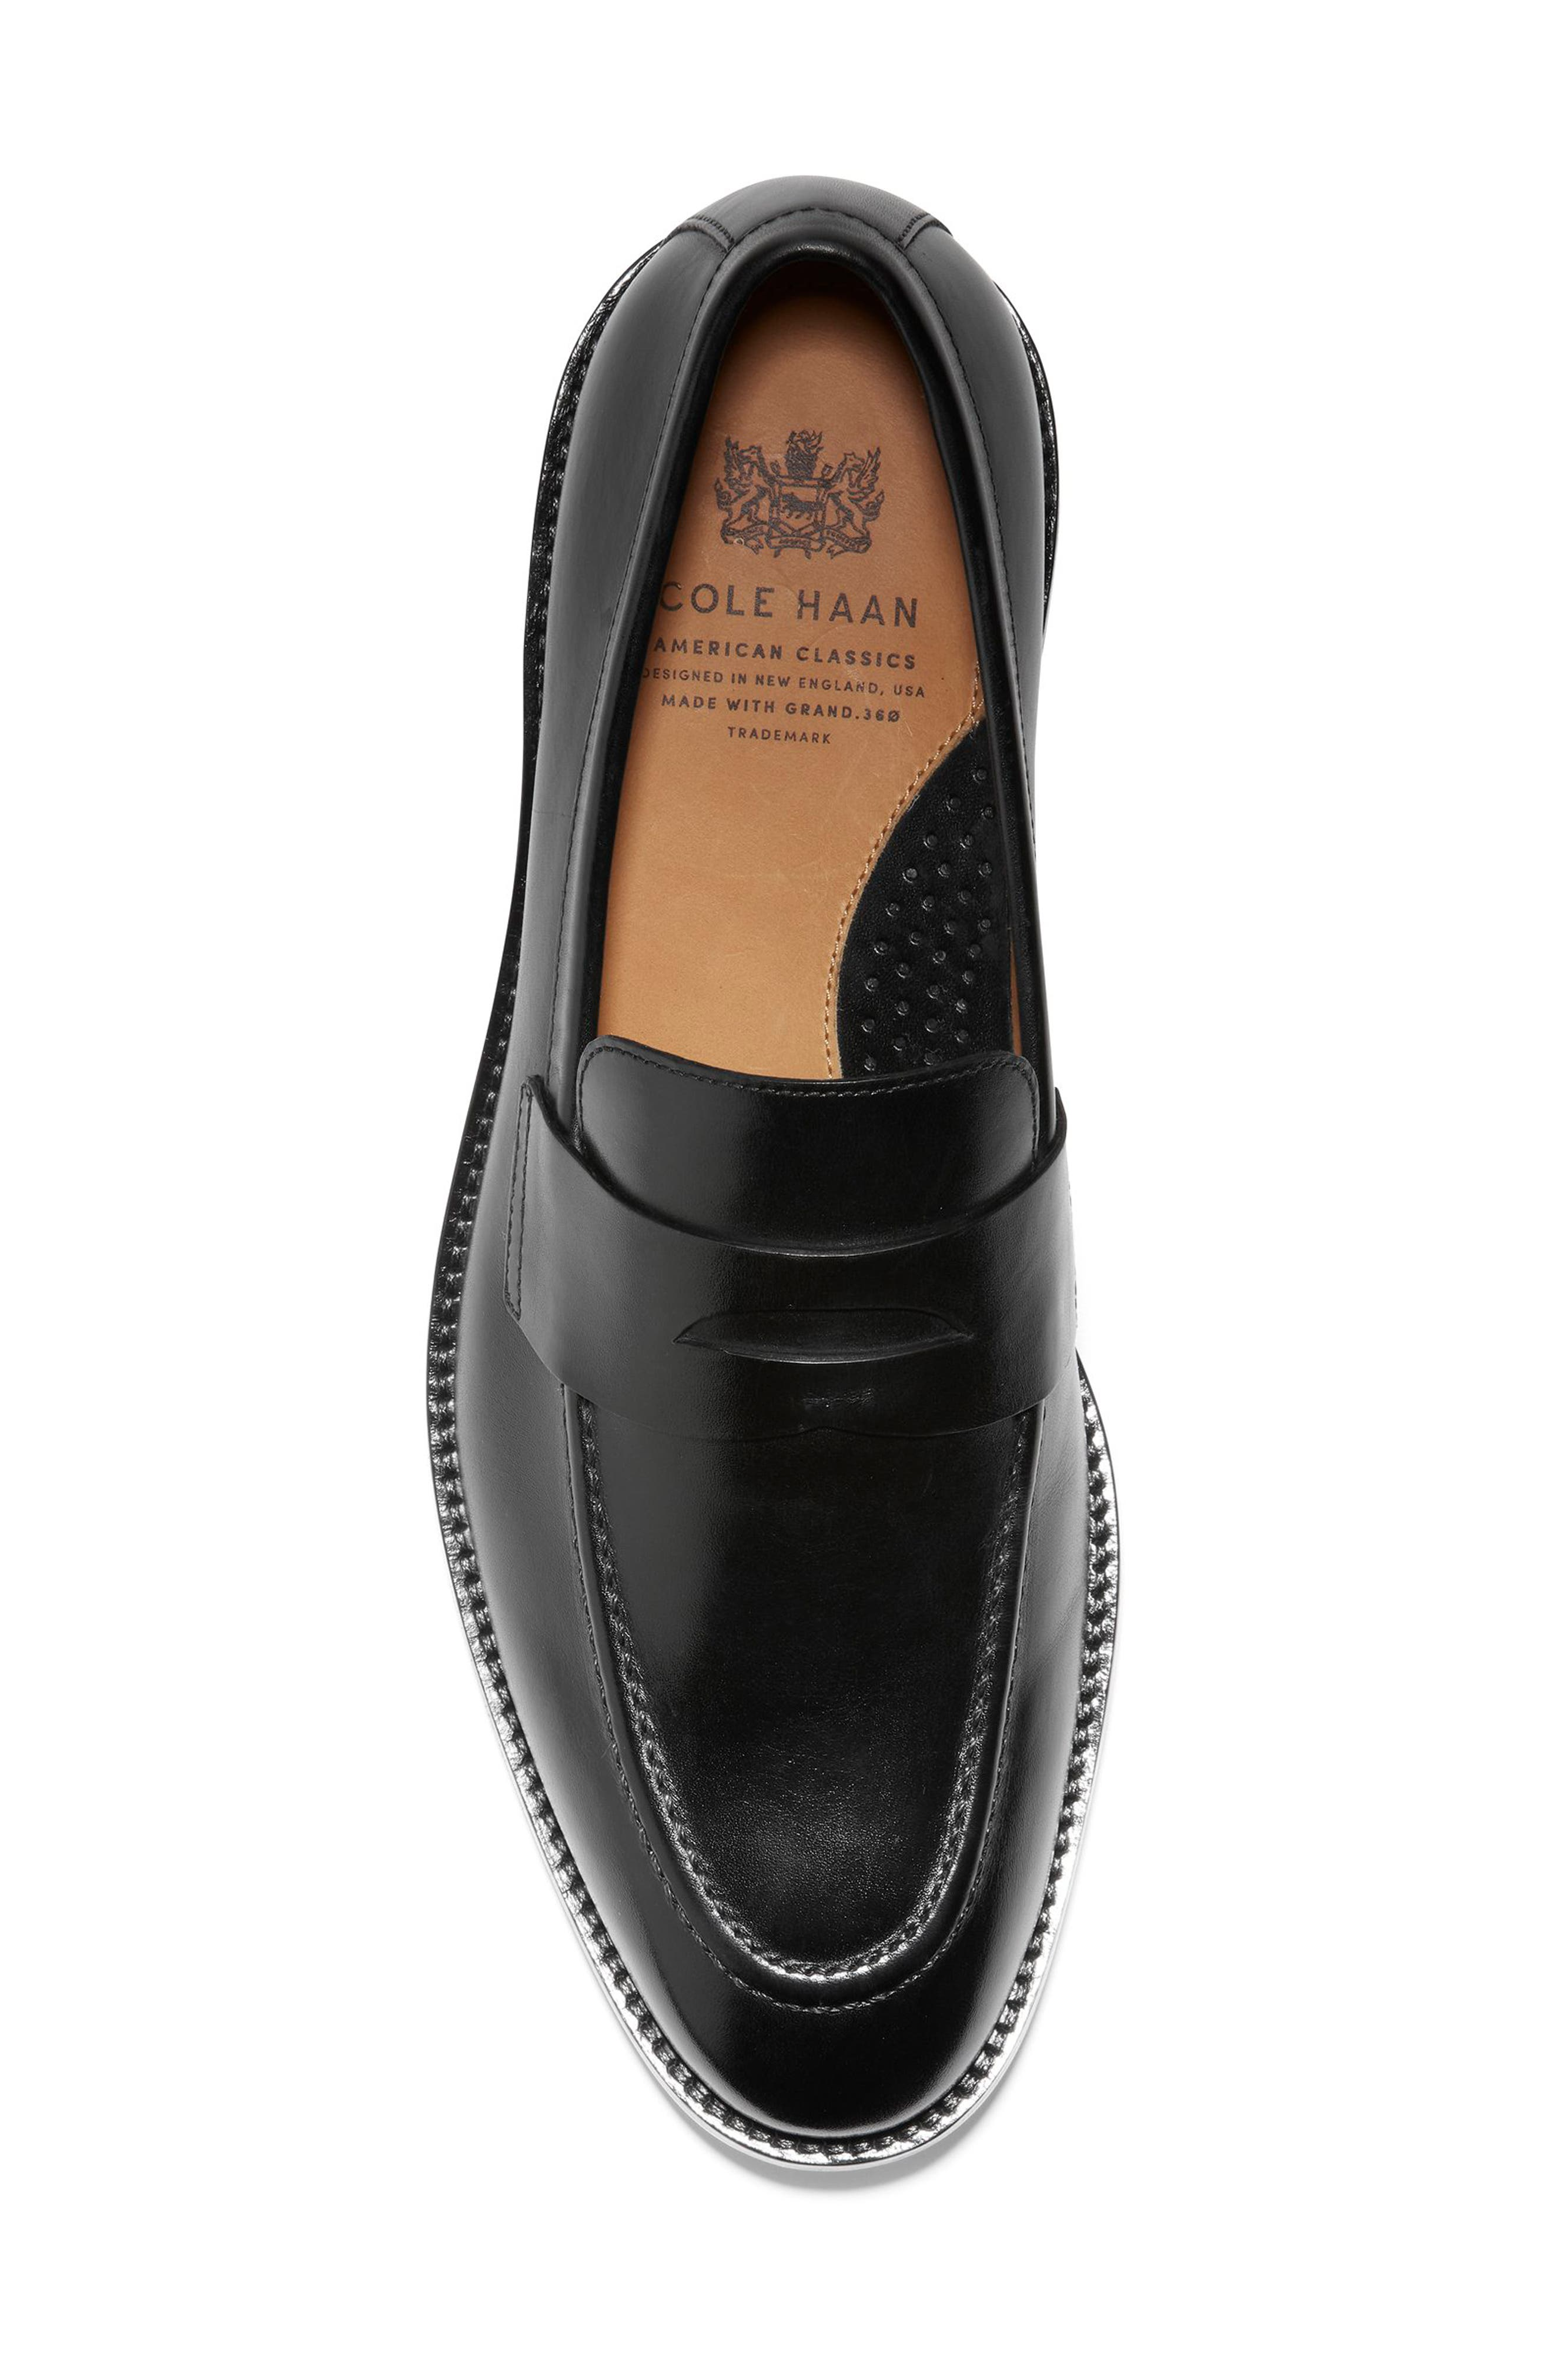 COLE HAAN, American Classics Kneeland Penny Loafer, Alternate thumbnail 5, color, BLACK LEATHER